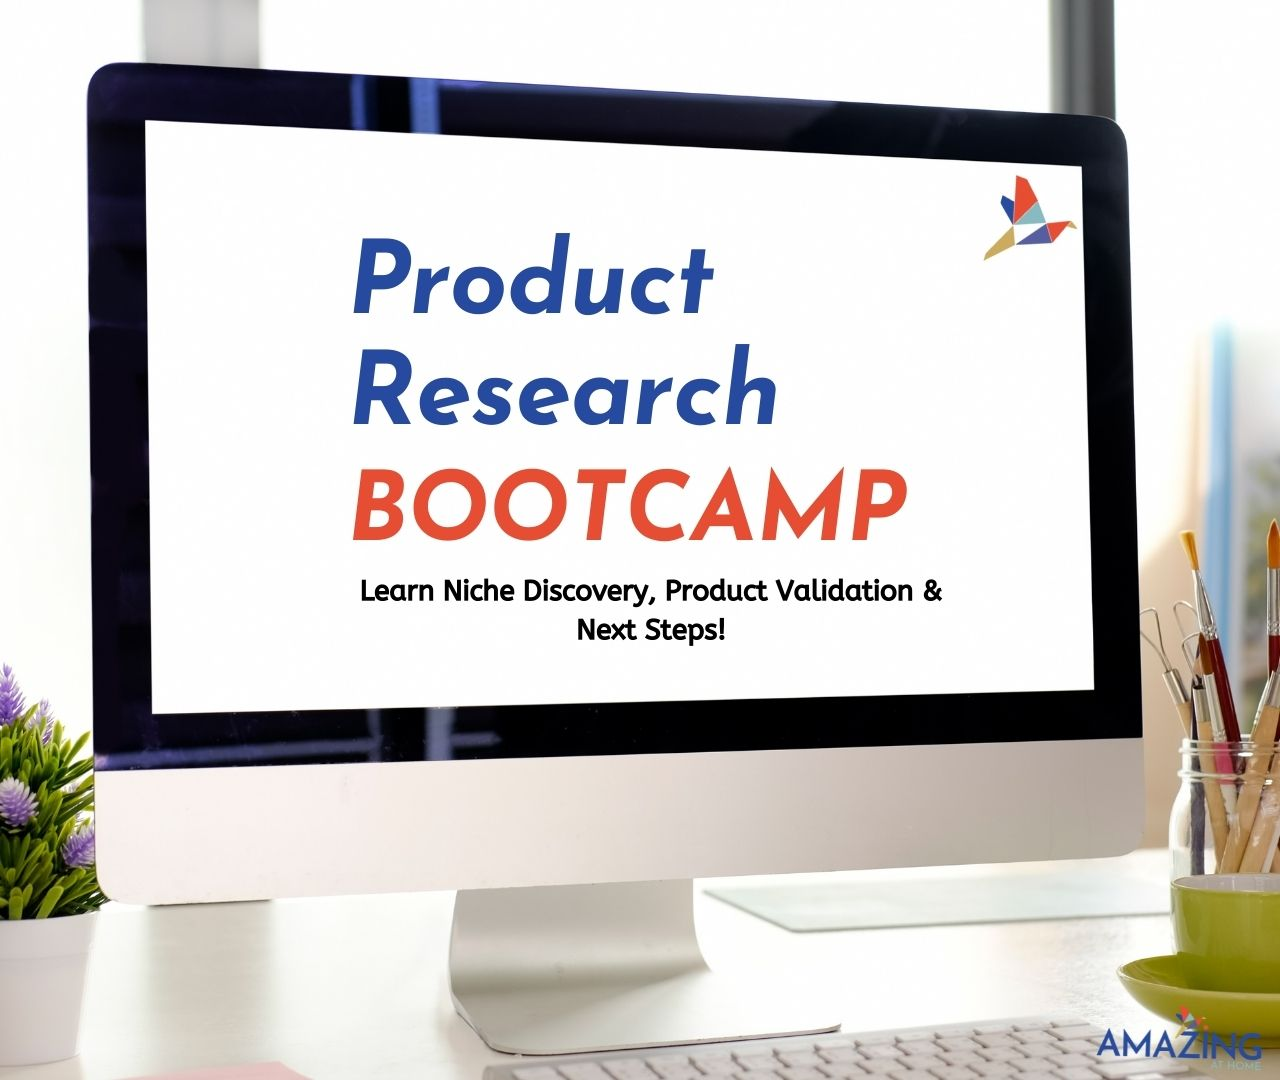 Product Research Bootcamp